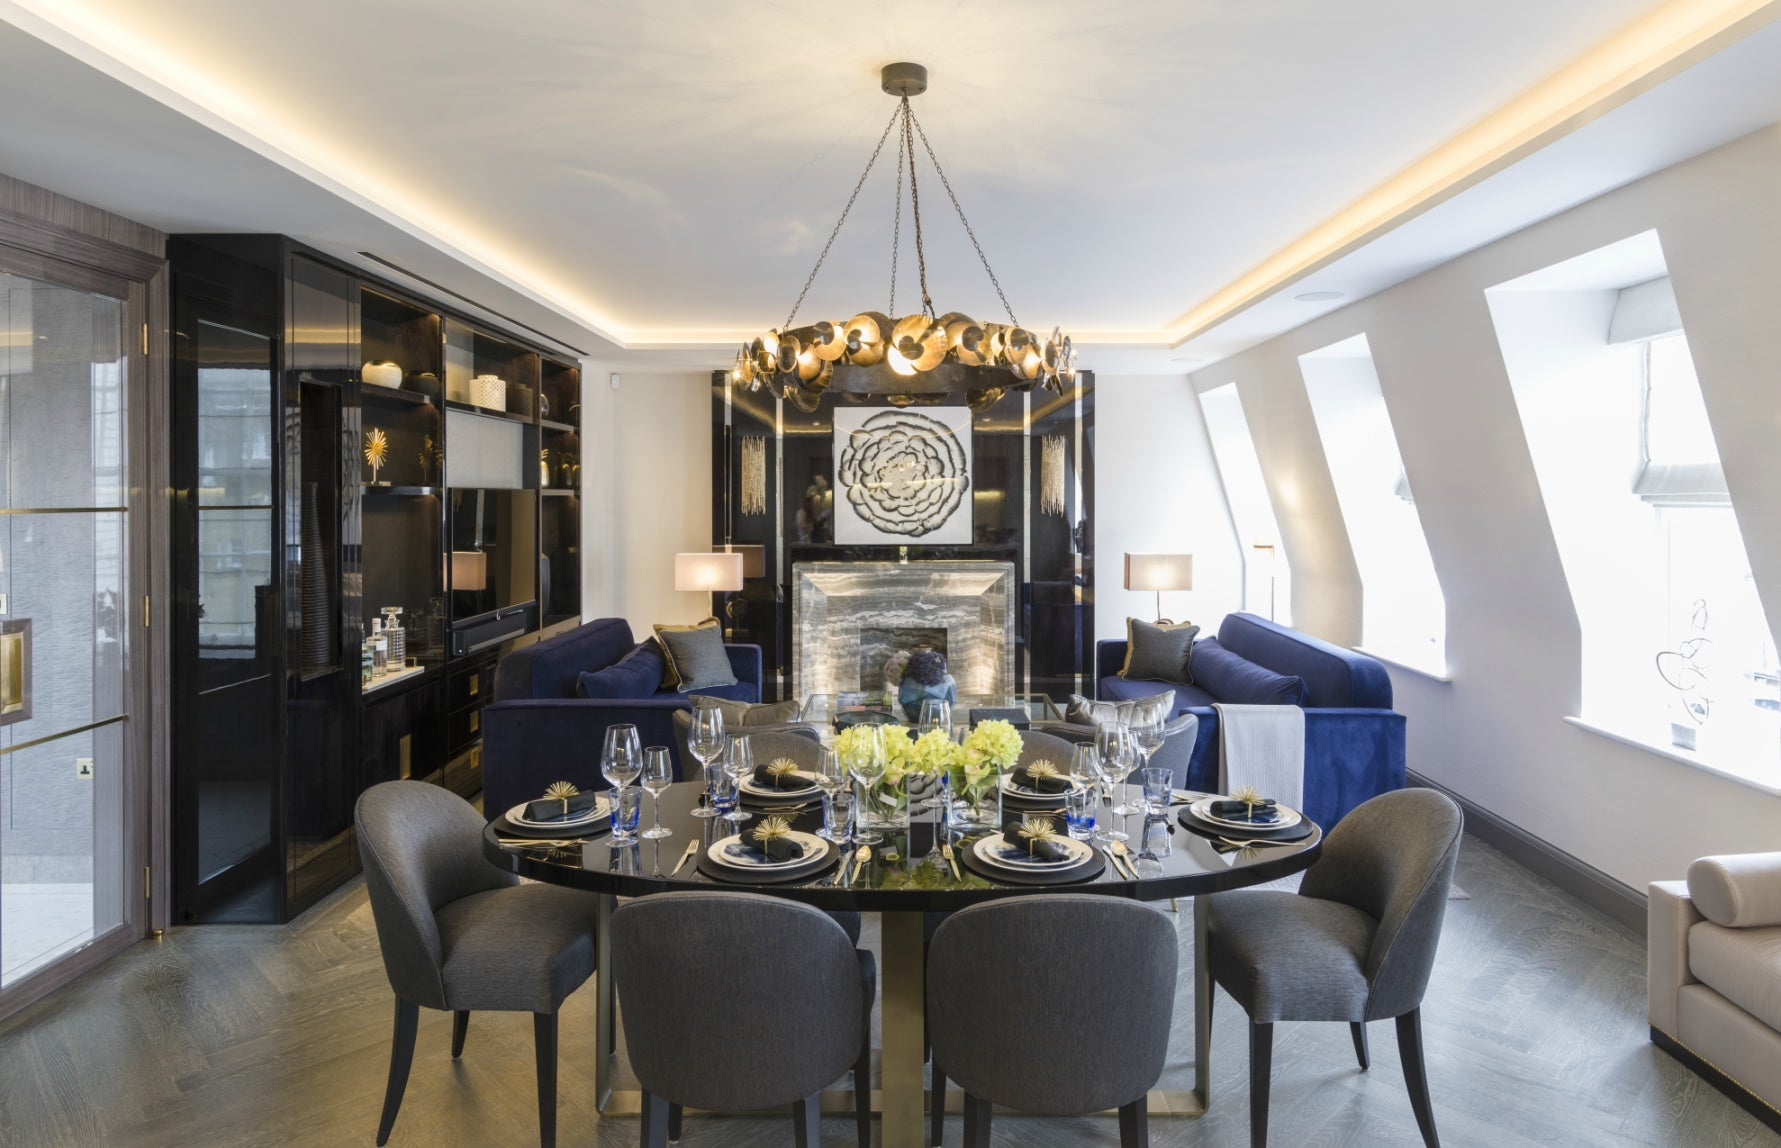 Luxury Dining Room Styles | Contemporary Dining Room | Taylor Howes | Read more in The Luxurist at LuxDeco.com